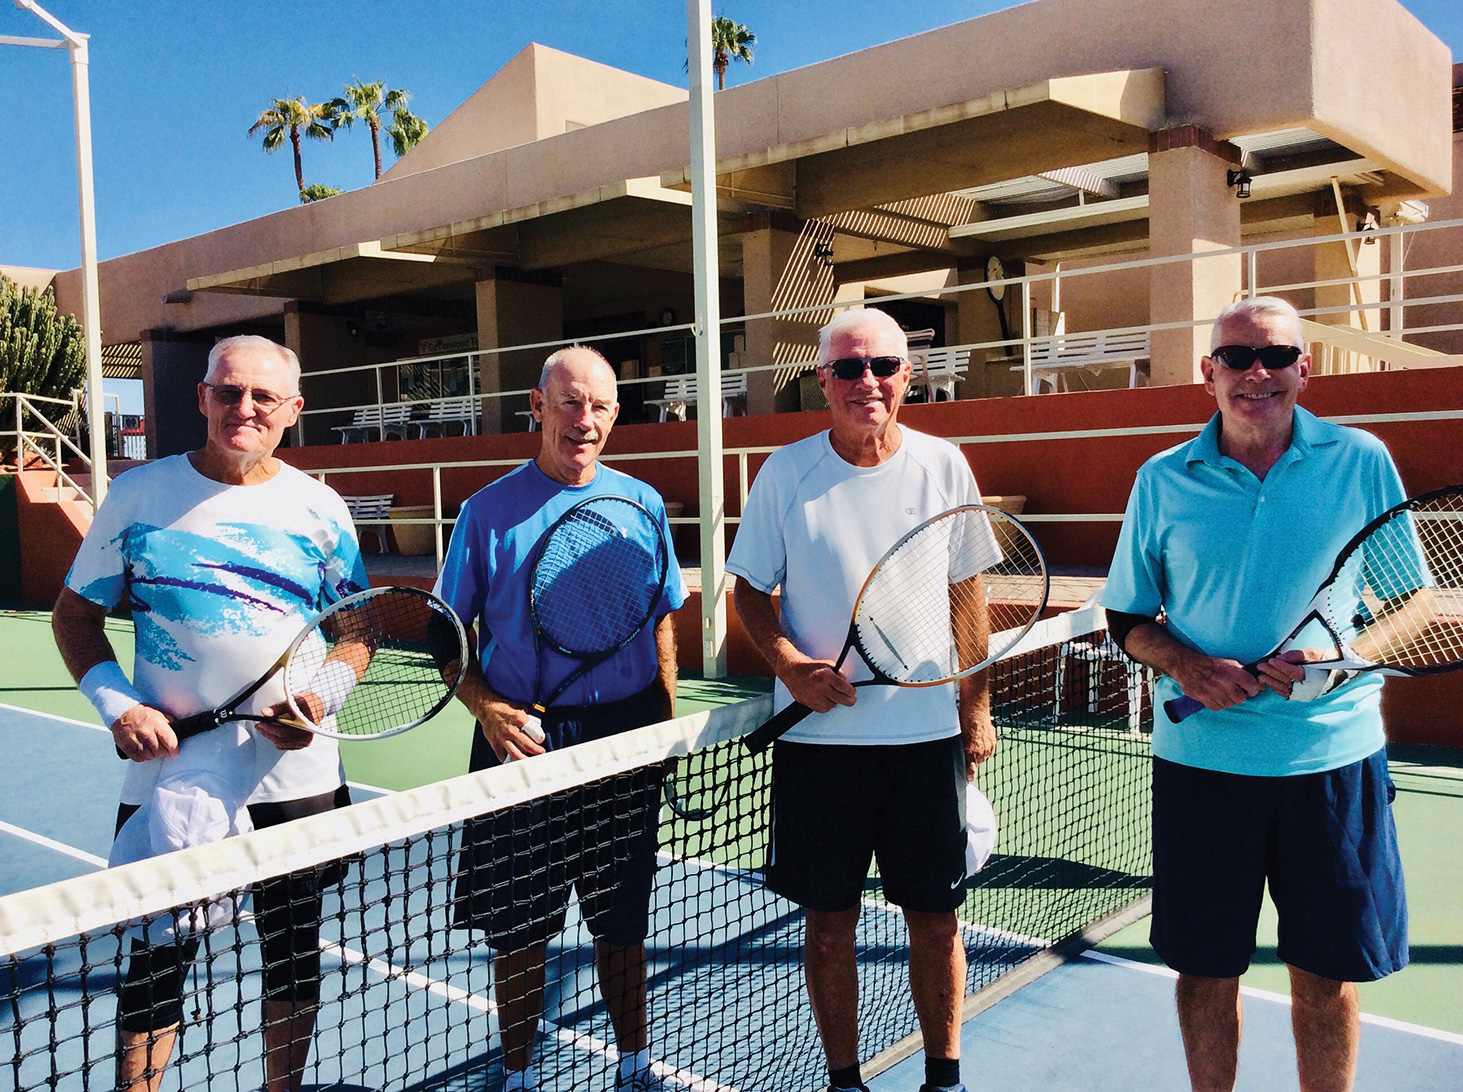 Four participants in the Thursday League get ready to play using the new format (left to right): Ron Ryer, Spencer Roberts, Keith Nelson, and Randy McManus.